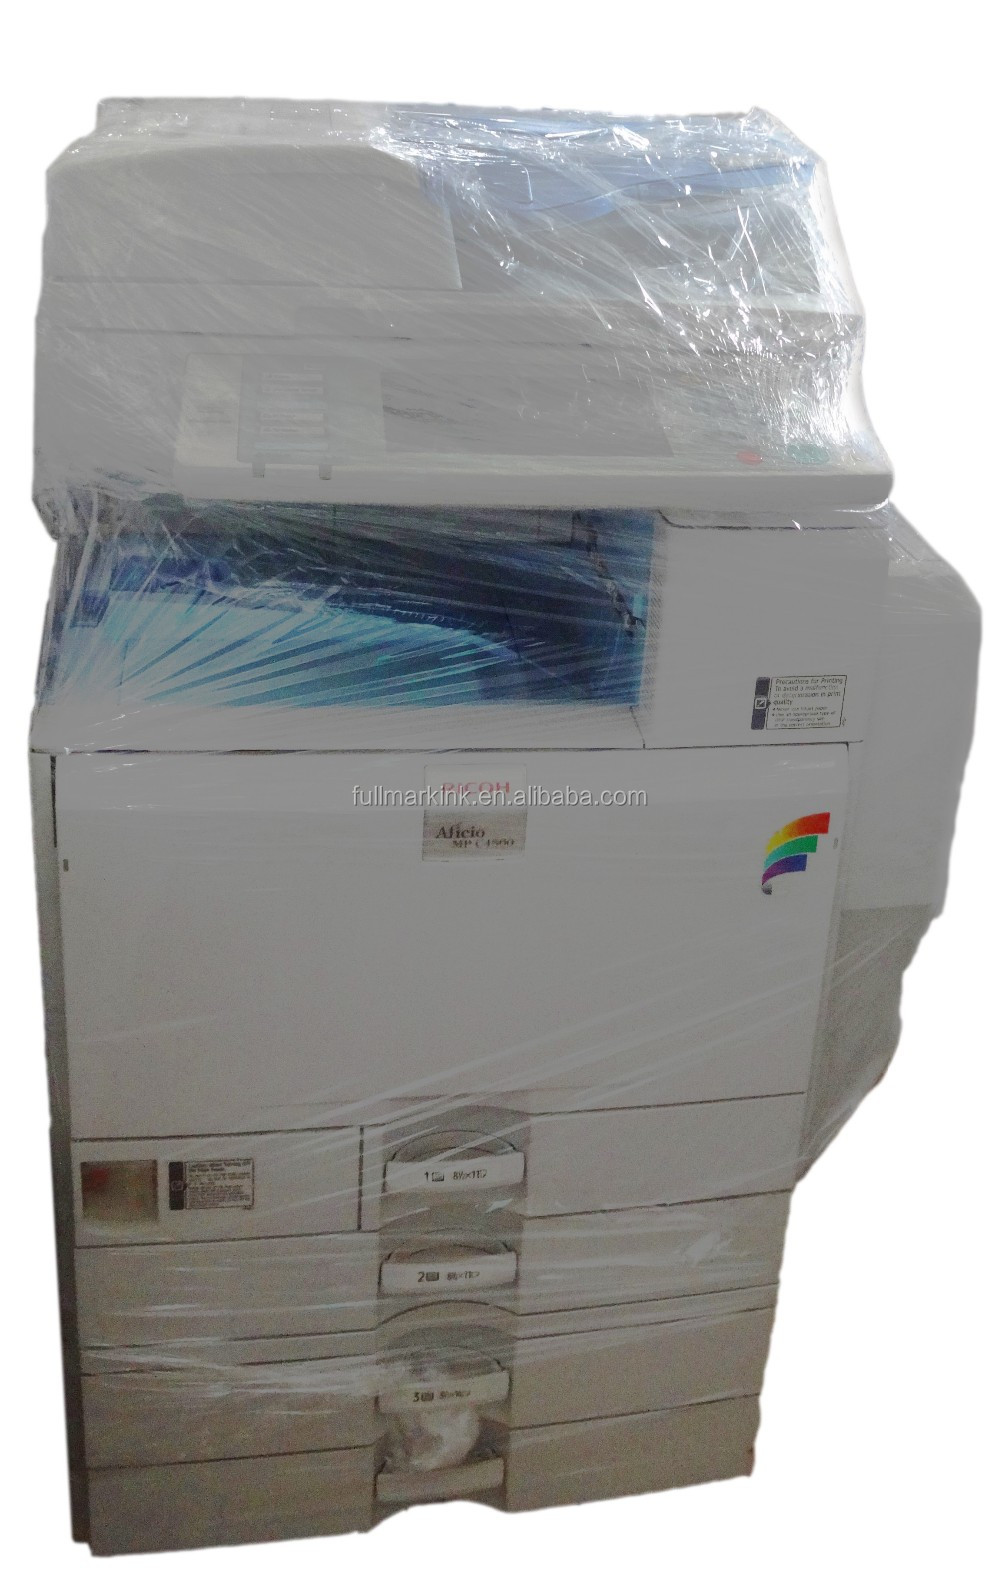 used copier machine ricoh mp 4000/5000 printer second hand photocopier for copy printing